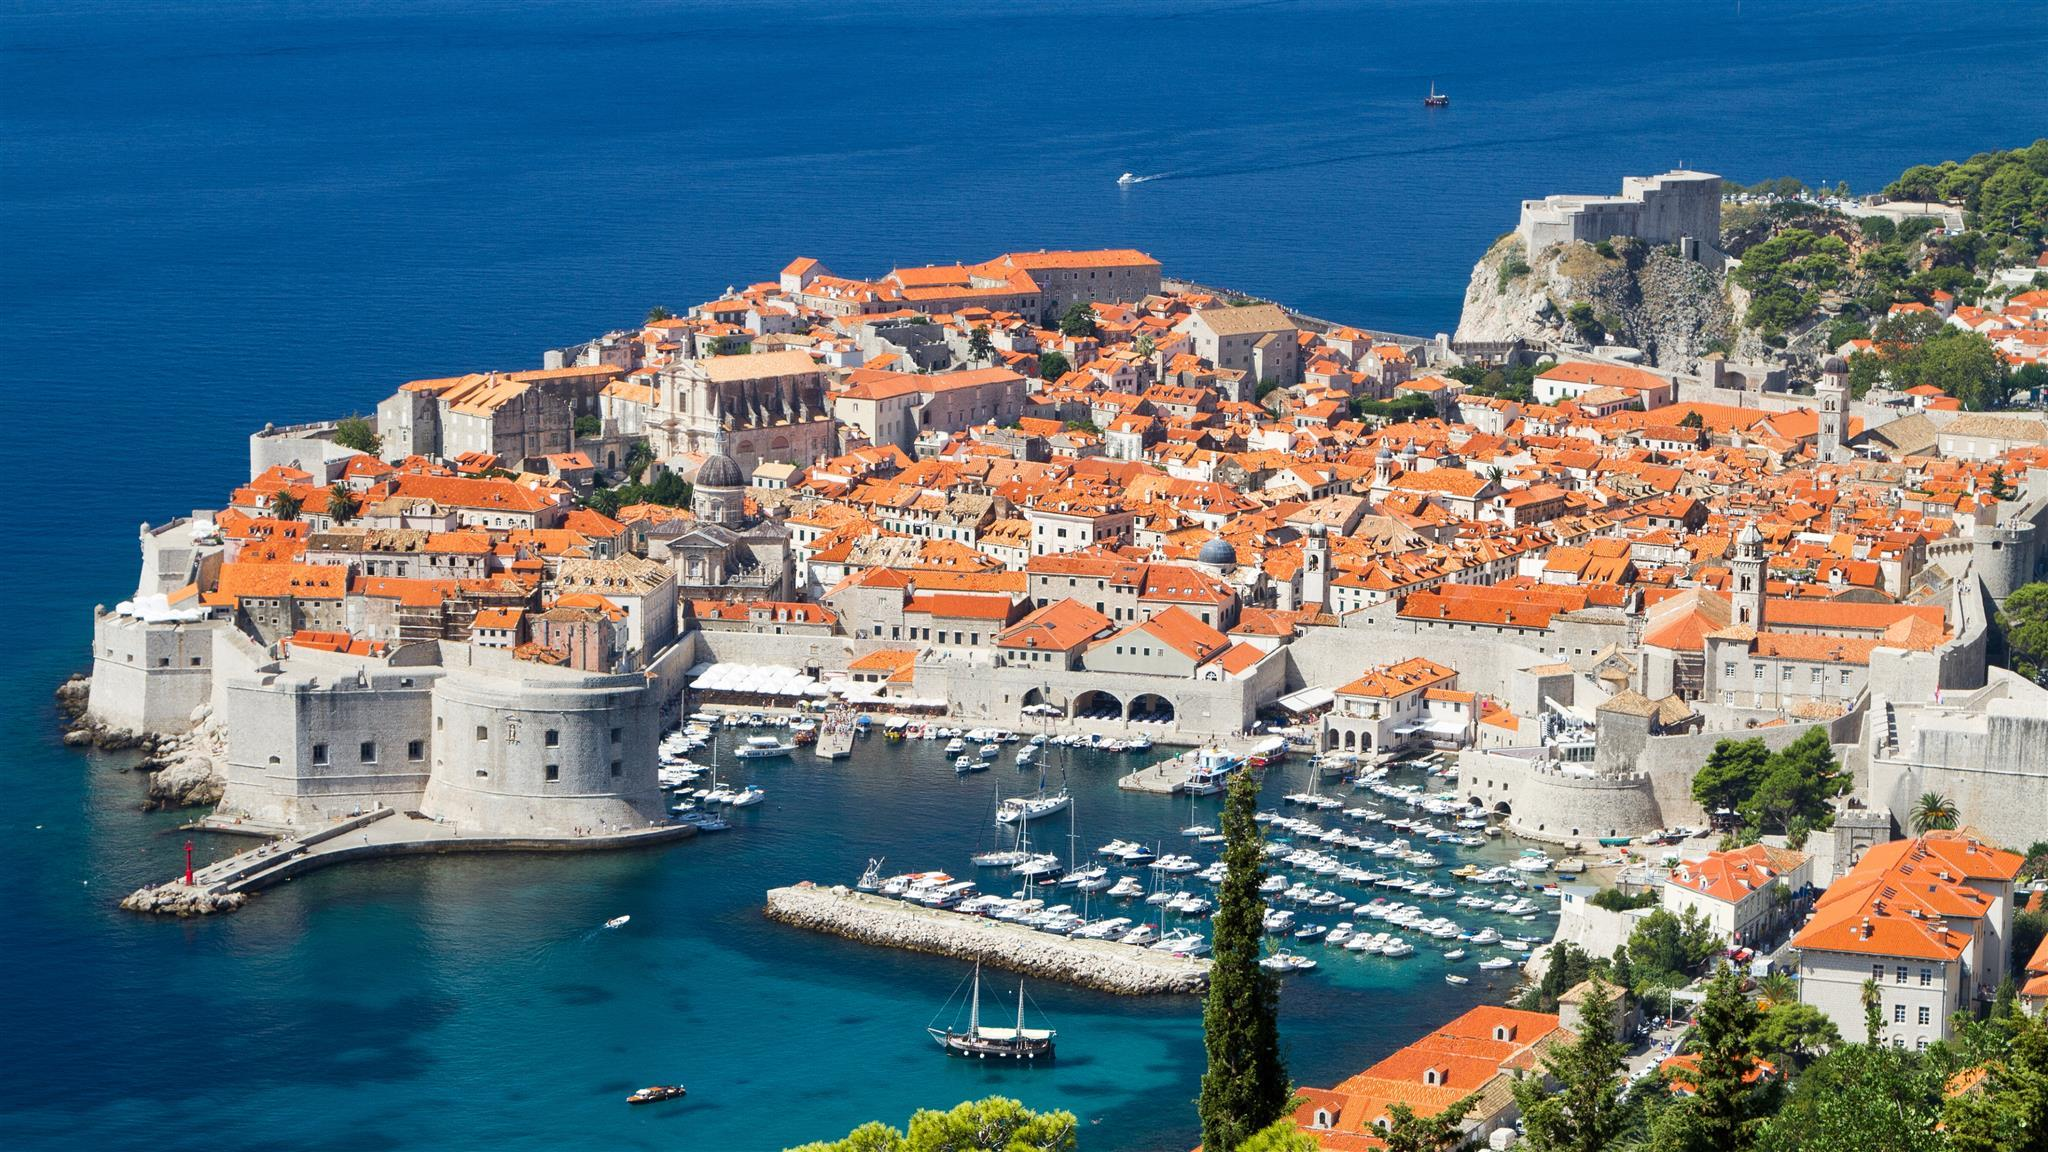 The best choice for a luxury holiday in Dubrovnik!